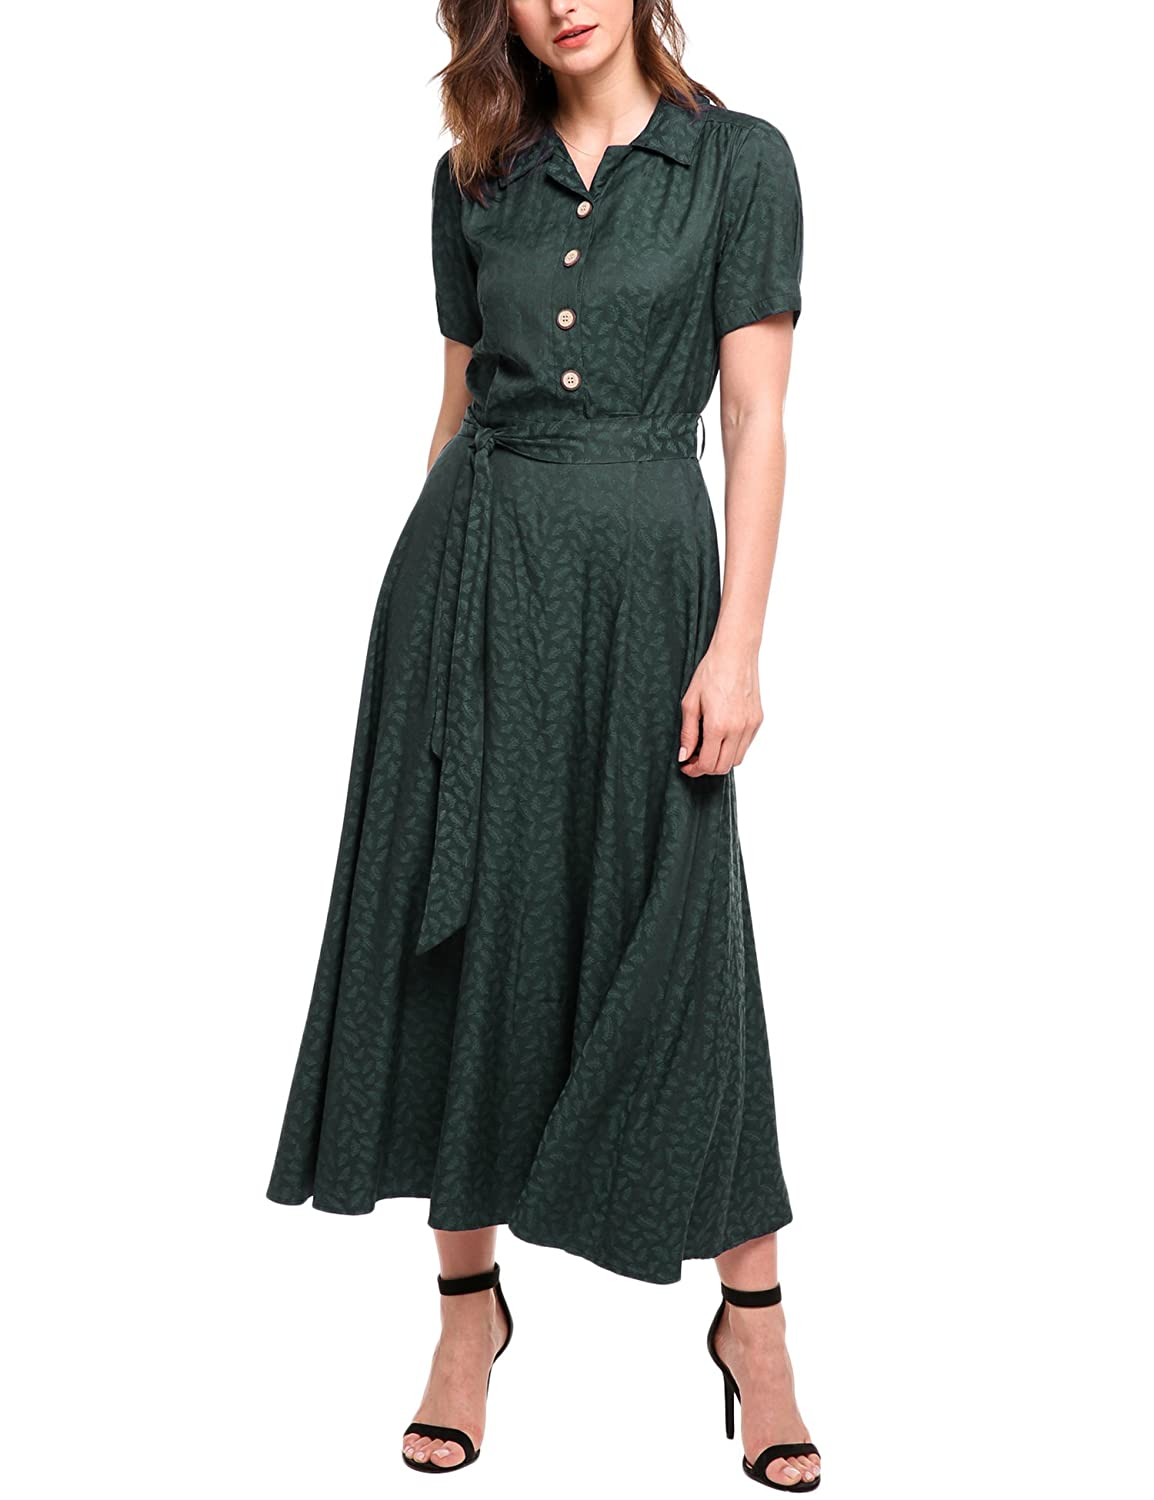 Agent Peggy Carter Costume, Dress, Hats ACEVOG Women Vintage Style Turn Down Collar Short Sleeve High Waist Maxi Swing Dress with Belt $38.99 AT vintagedancer.com